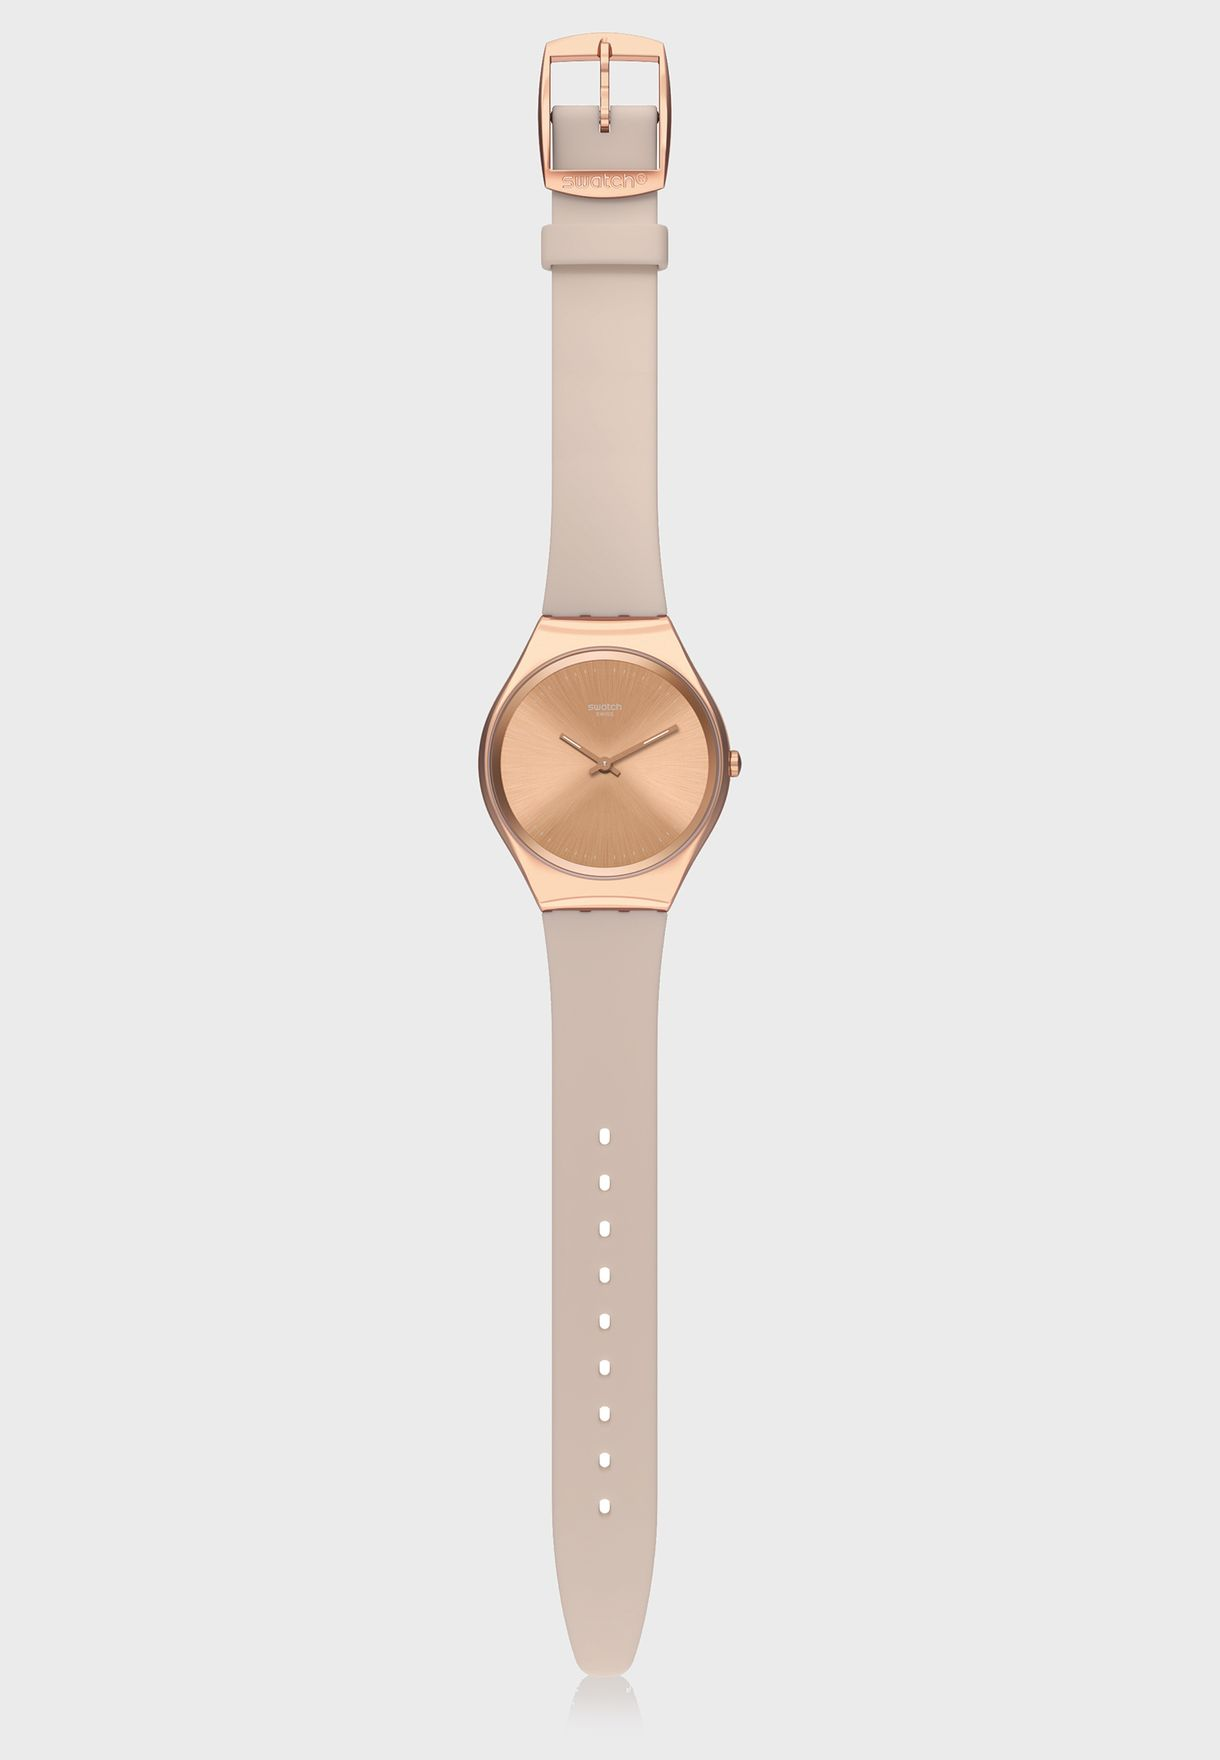 Skinrosee Analog Watch